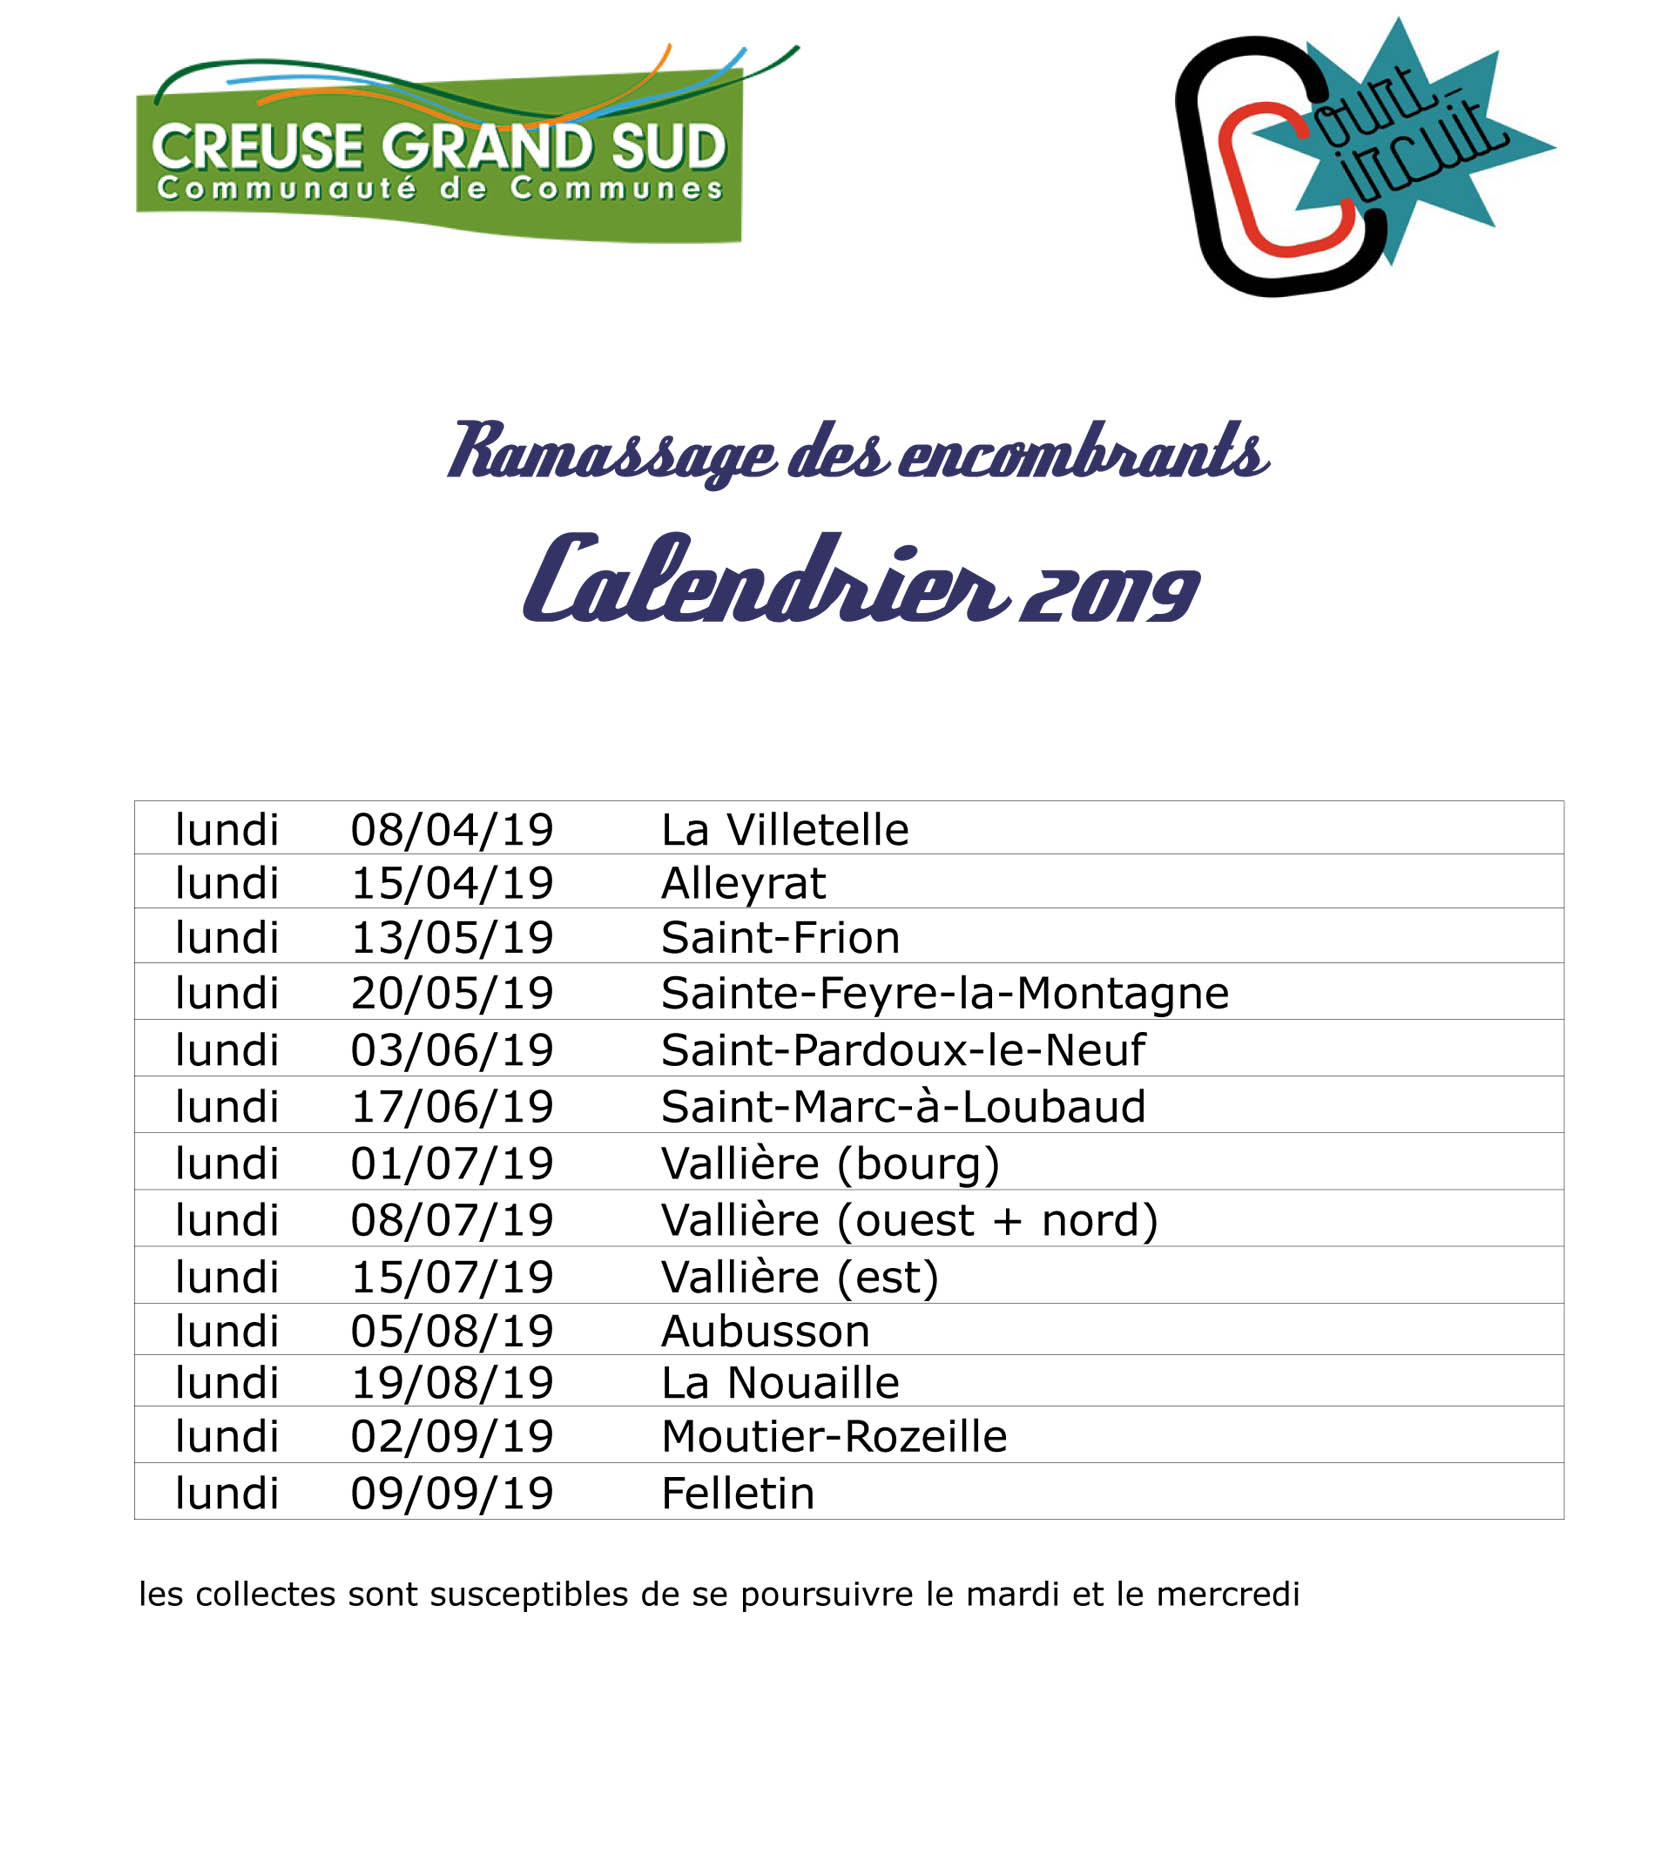 calendrier encombrants